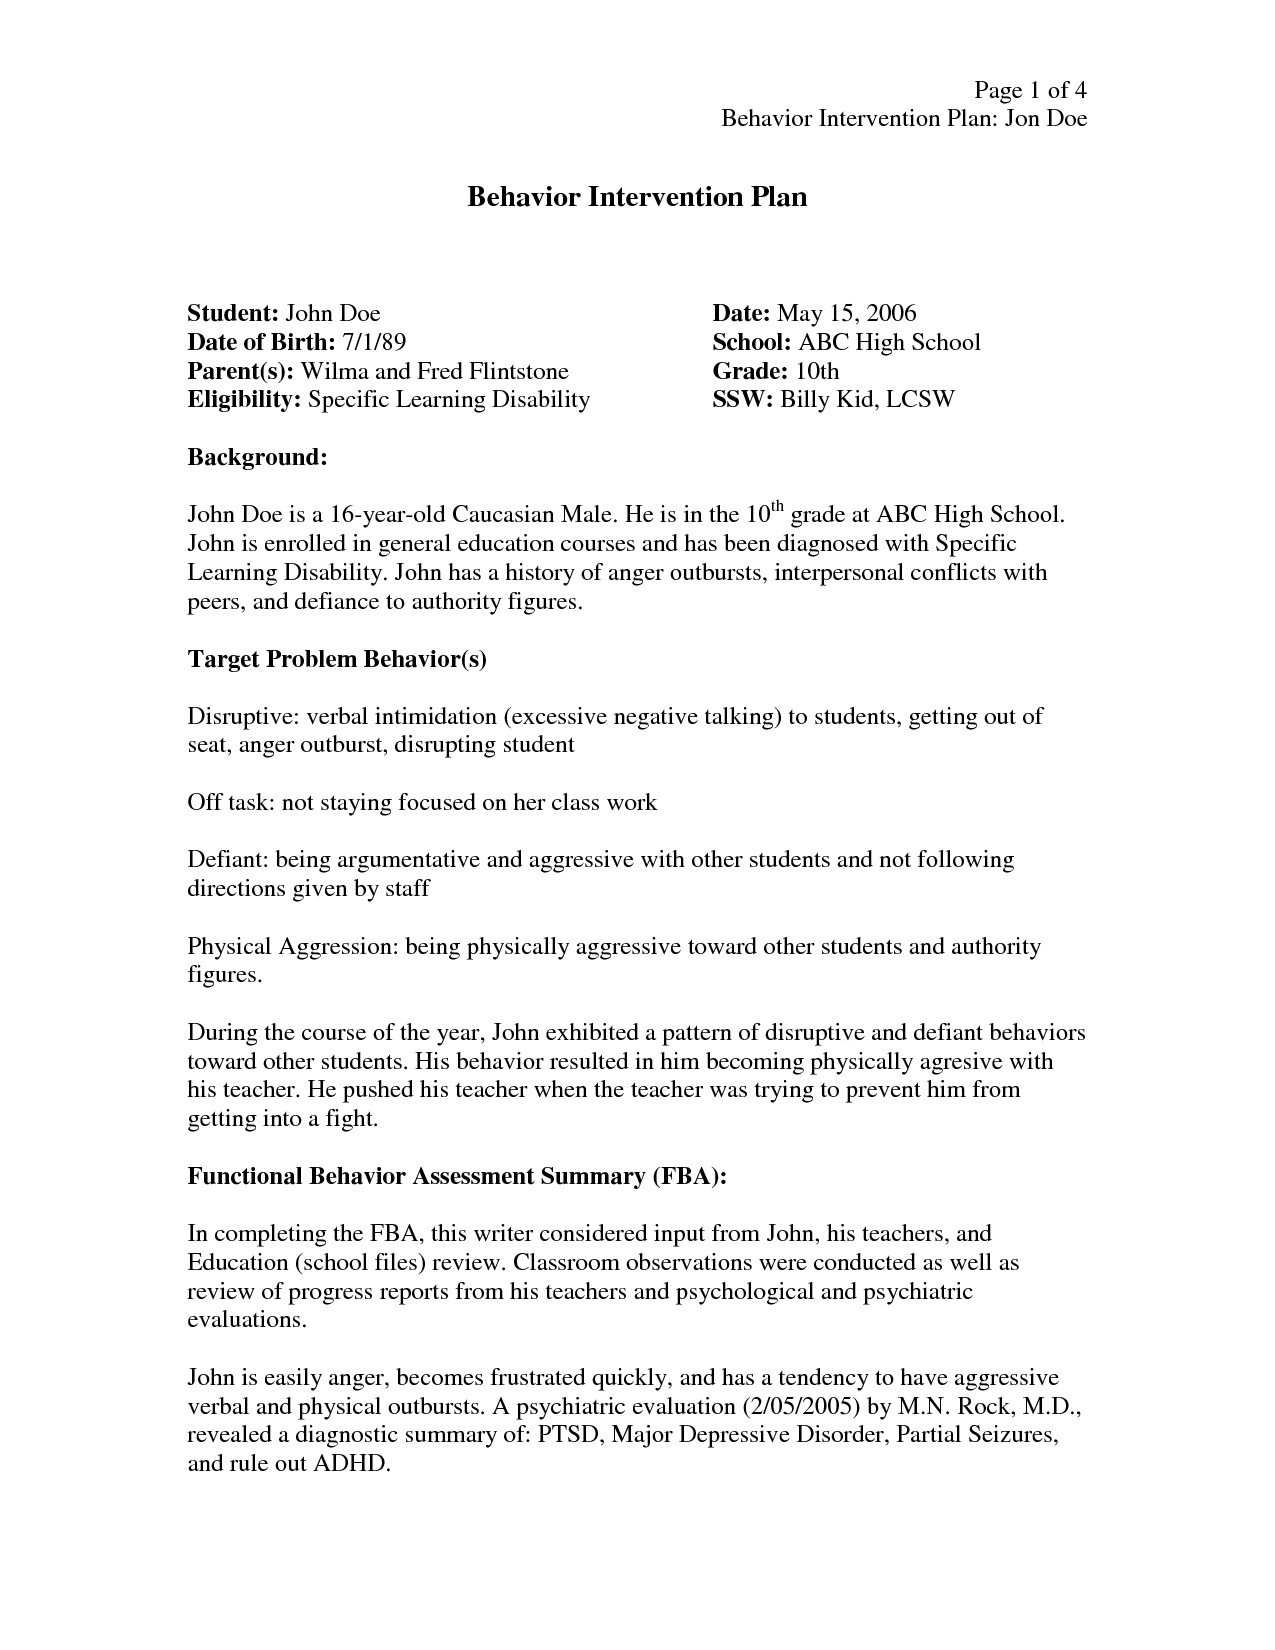 Behavior Intervention Plan Template Behavior Intervention Plan Template